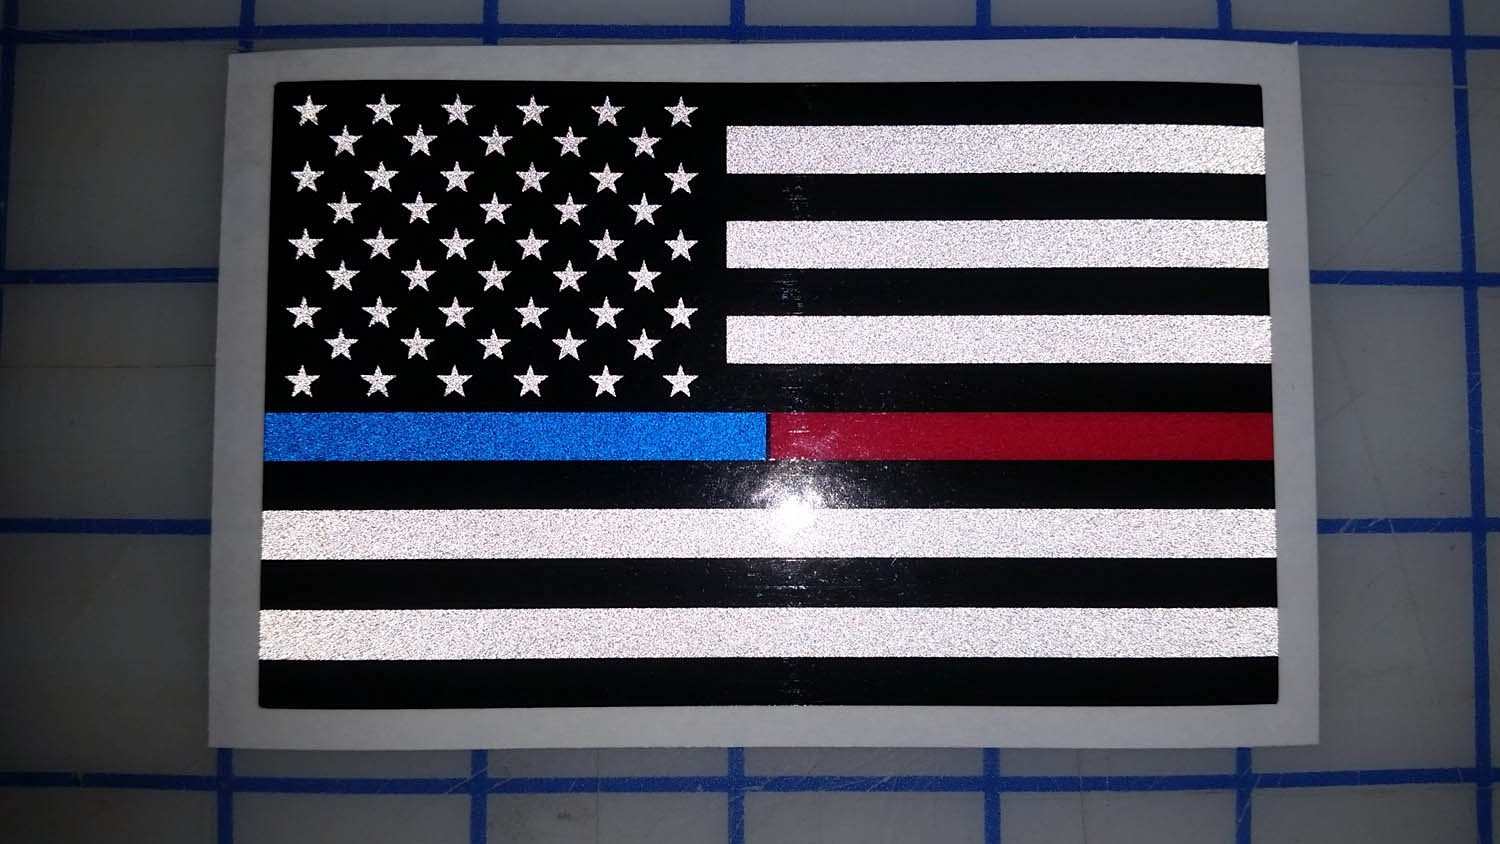 Get quotations · i make decals subdued us flag reflective decal with thin blue red line stripe